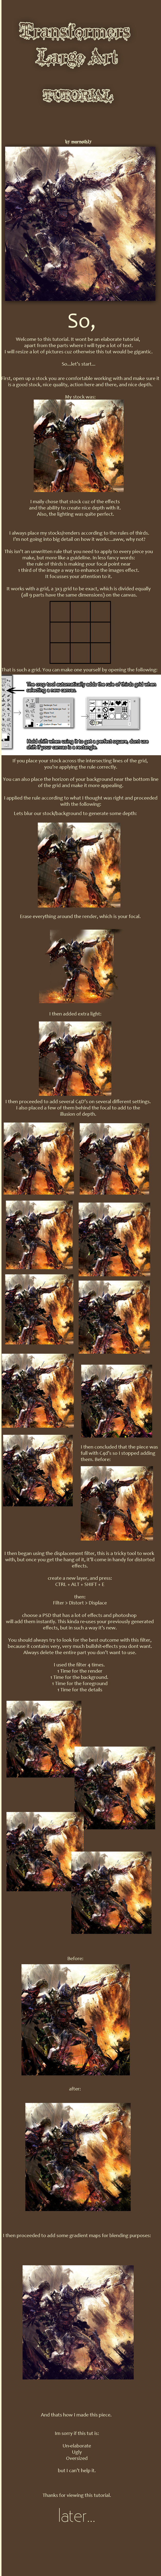 Transformers Large Art Tutoria by Mornothly